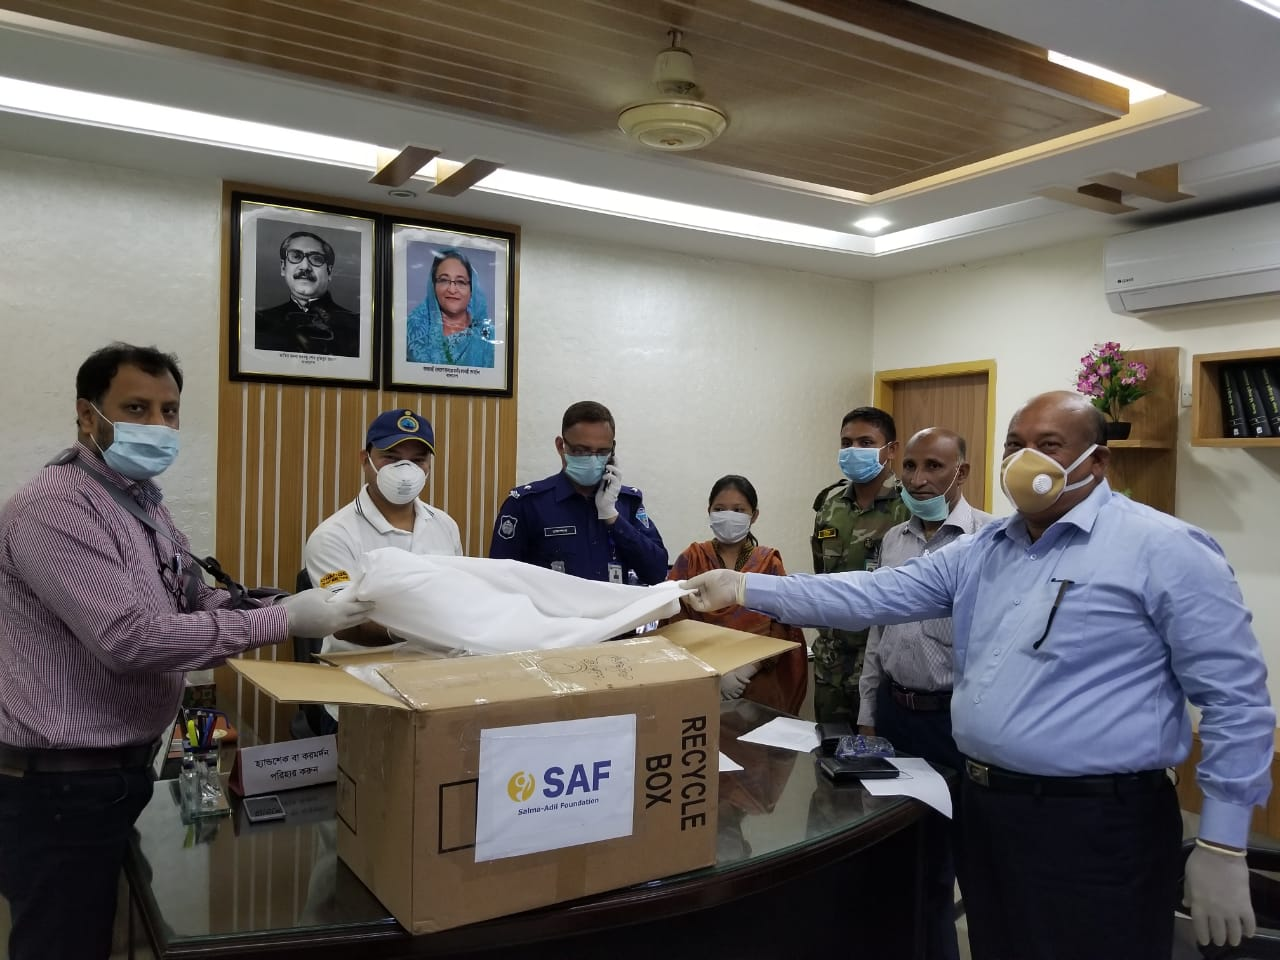 Salma-Adil Foundation Distributes PPE in Chandanaish